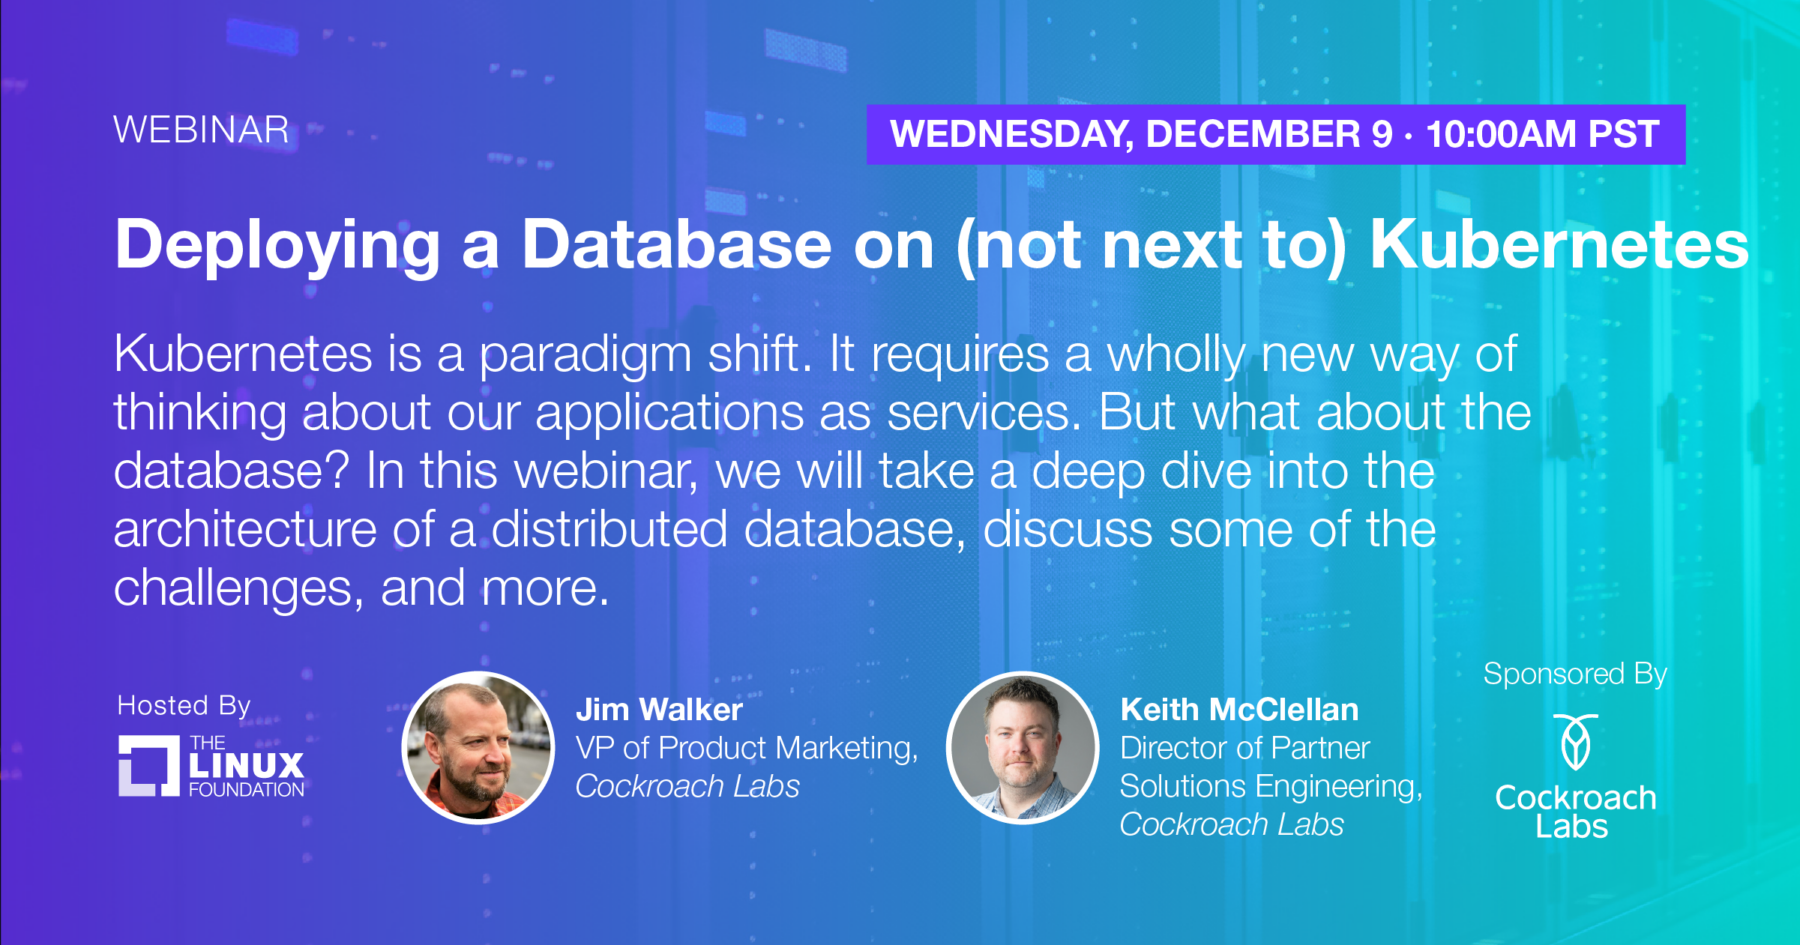 Webinar - Deploying a Database on (not next to) Kubernetes